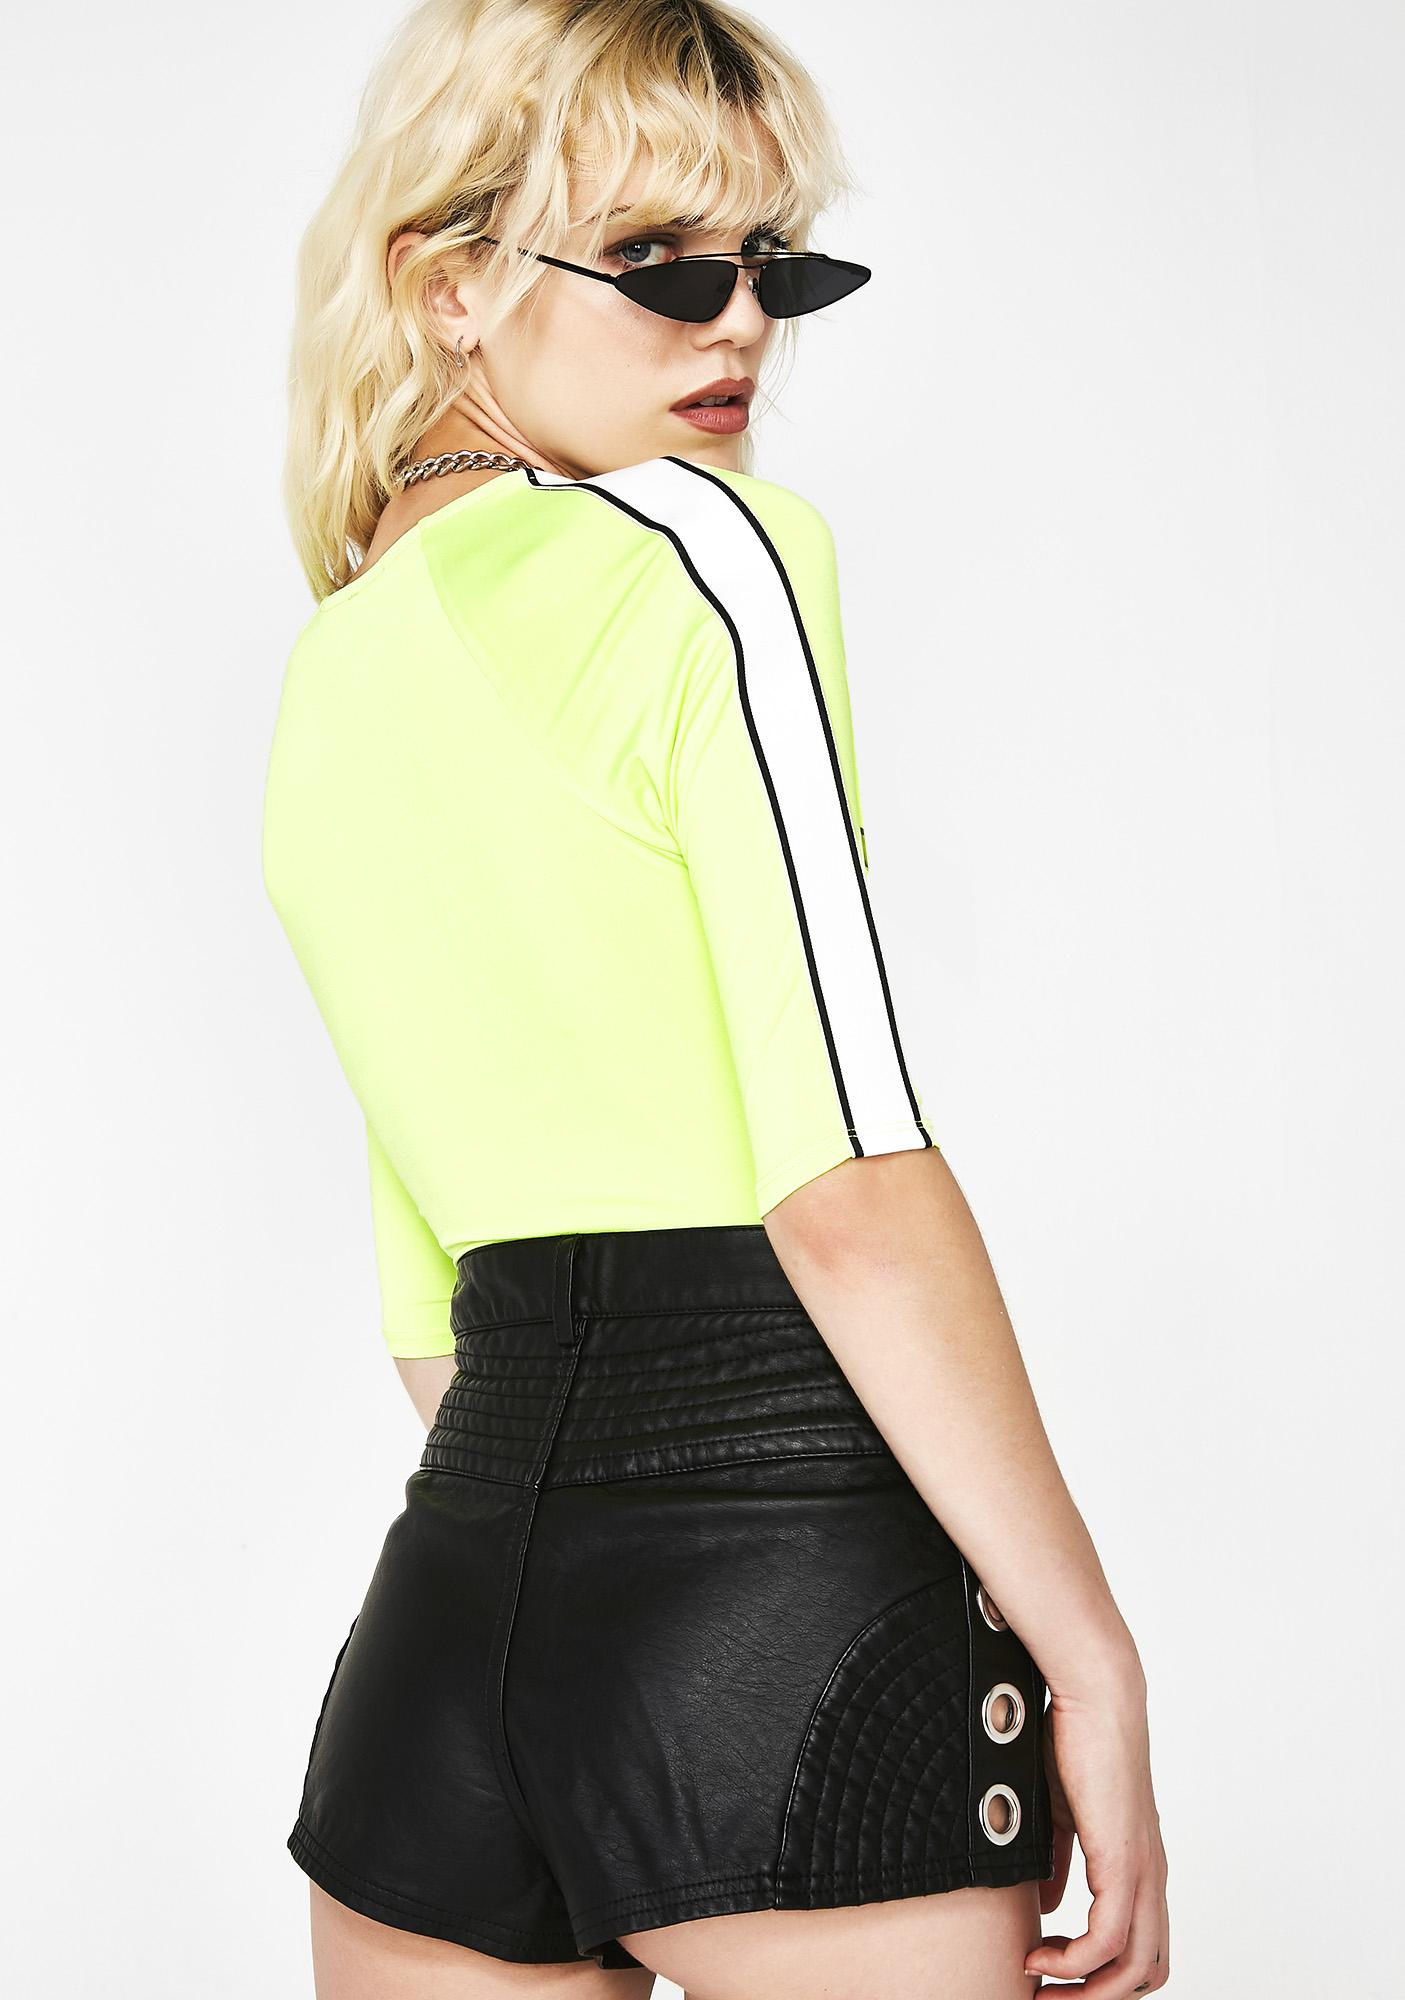 Hazard Zone Neon Bodysuit